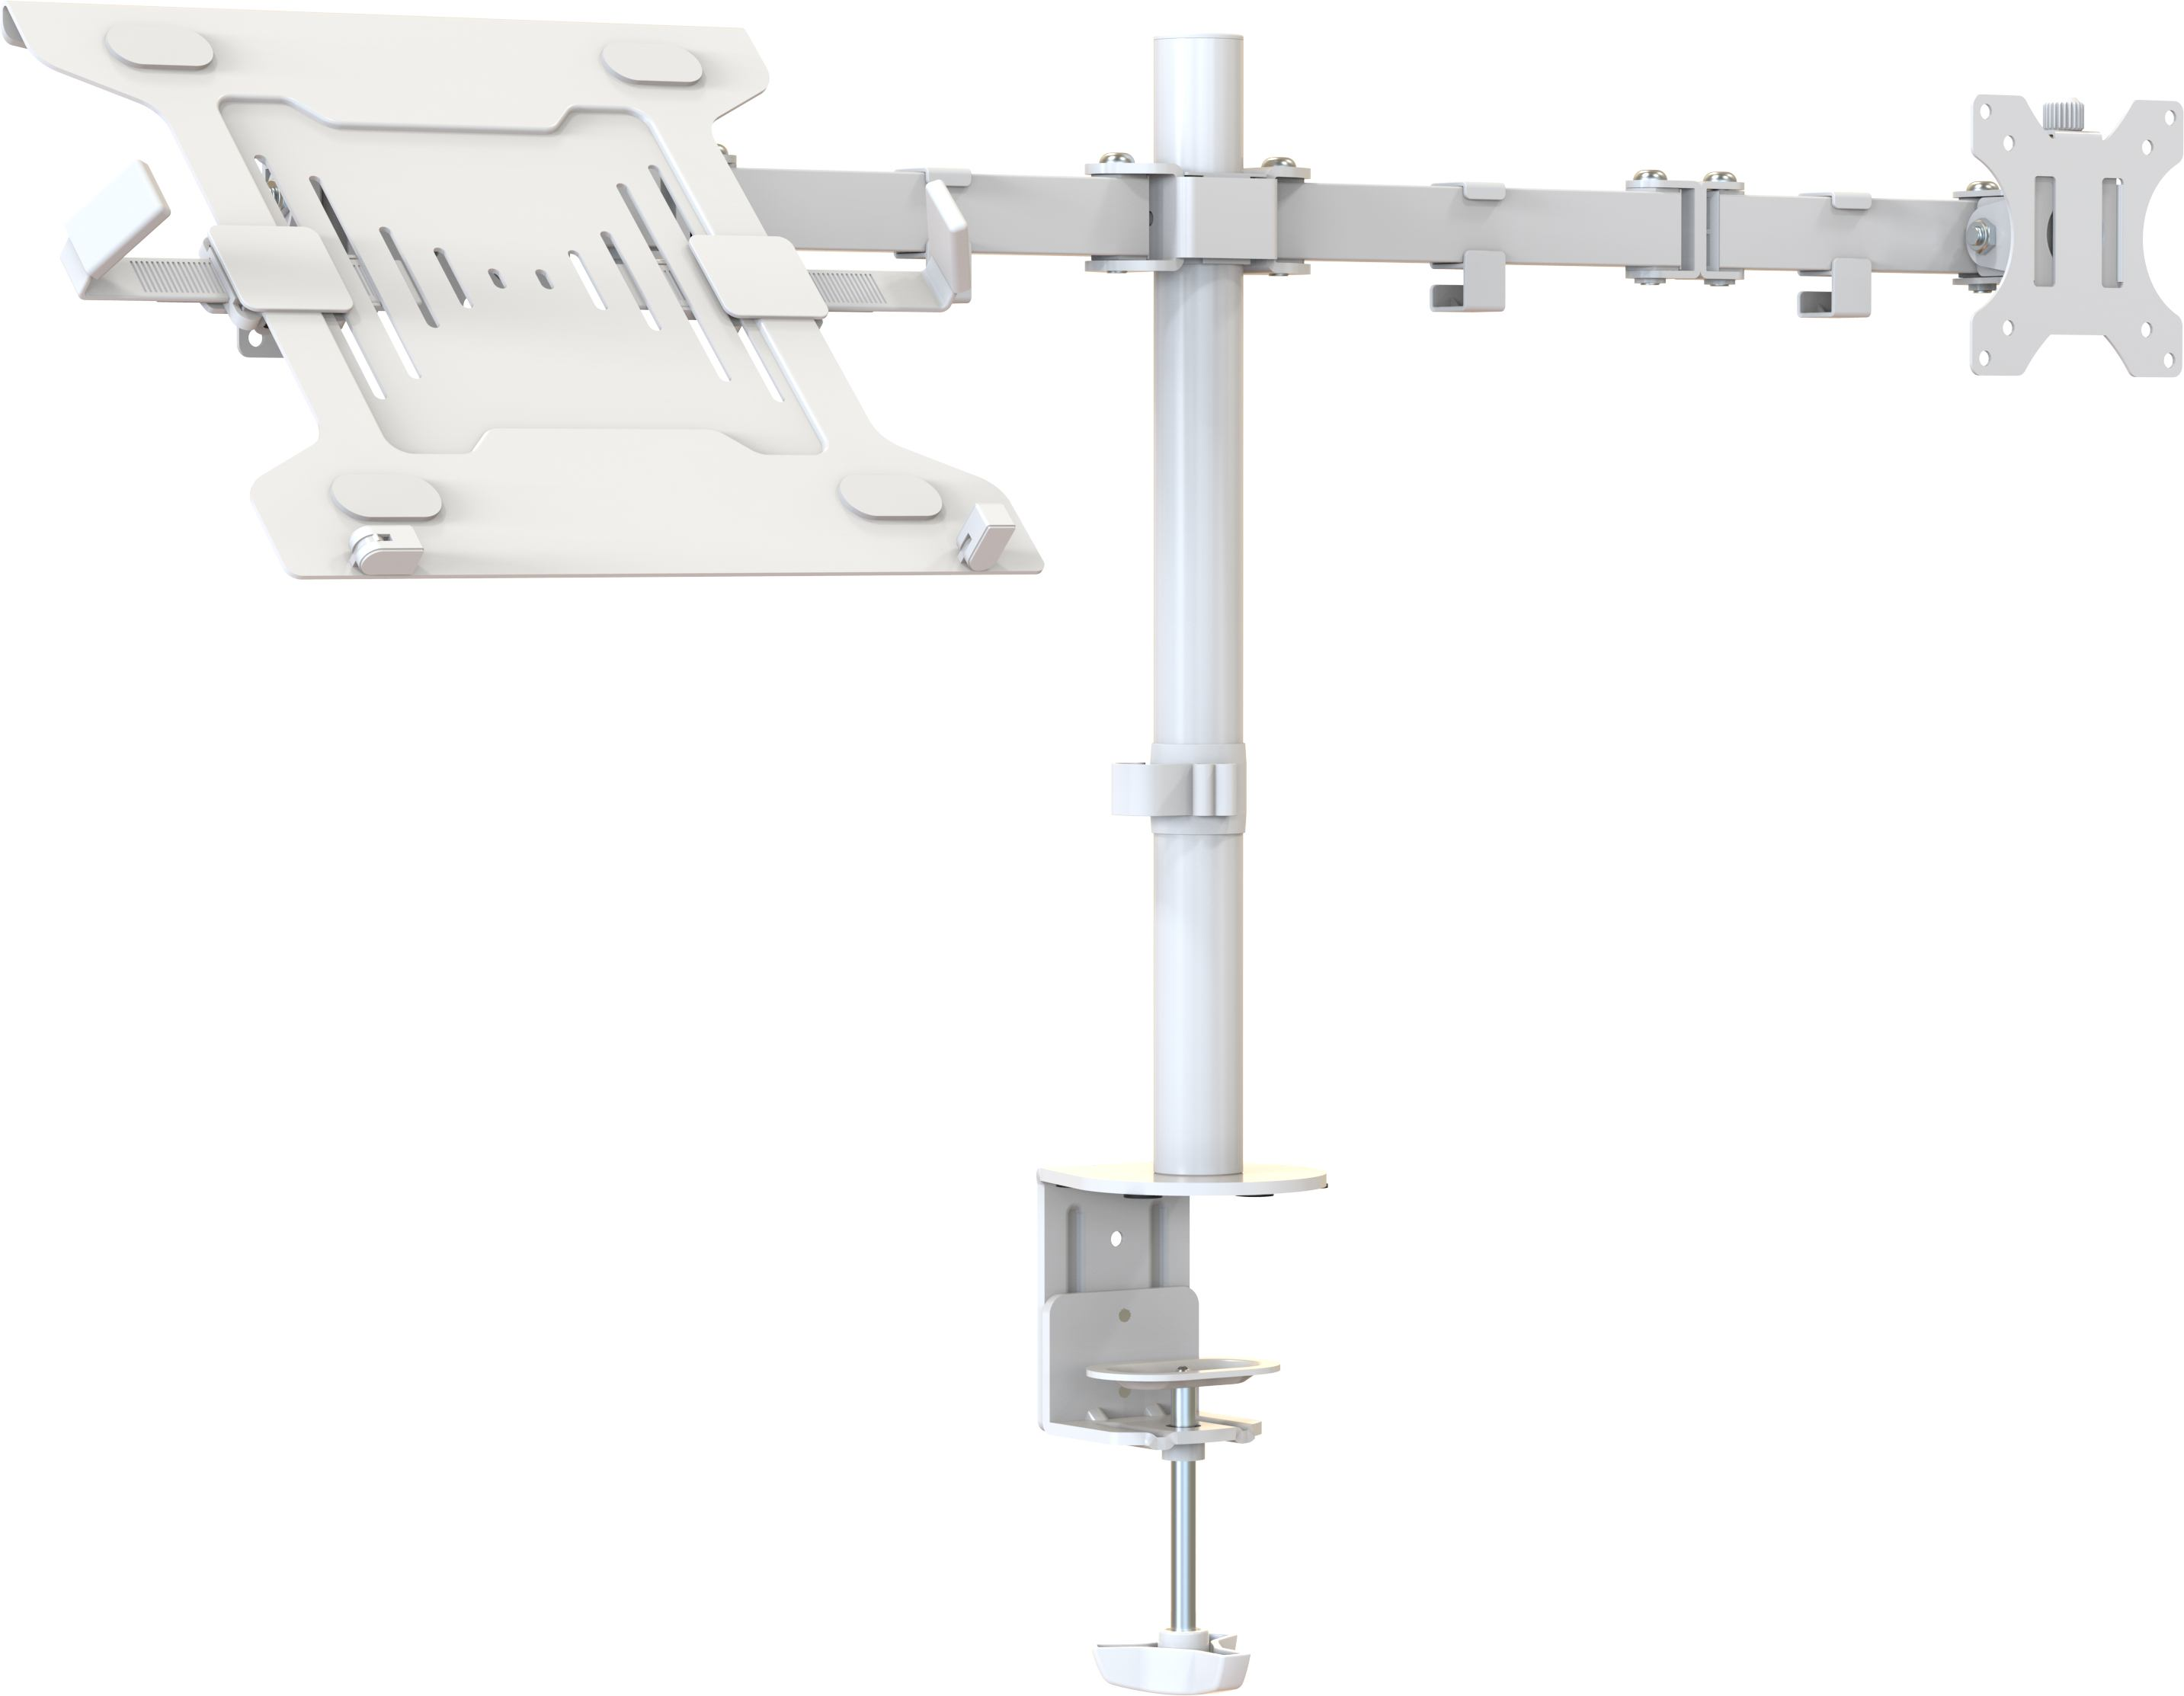 2022026-Vision-VFM-DPD2W-S-supporto-per-notebook-Notebook-amp-monitor-arm-Bianco-6